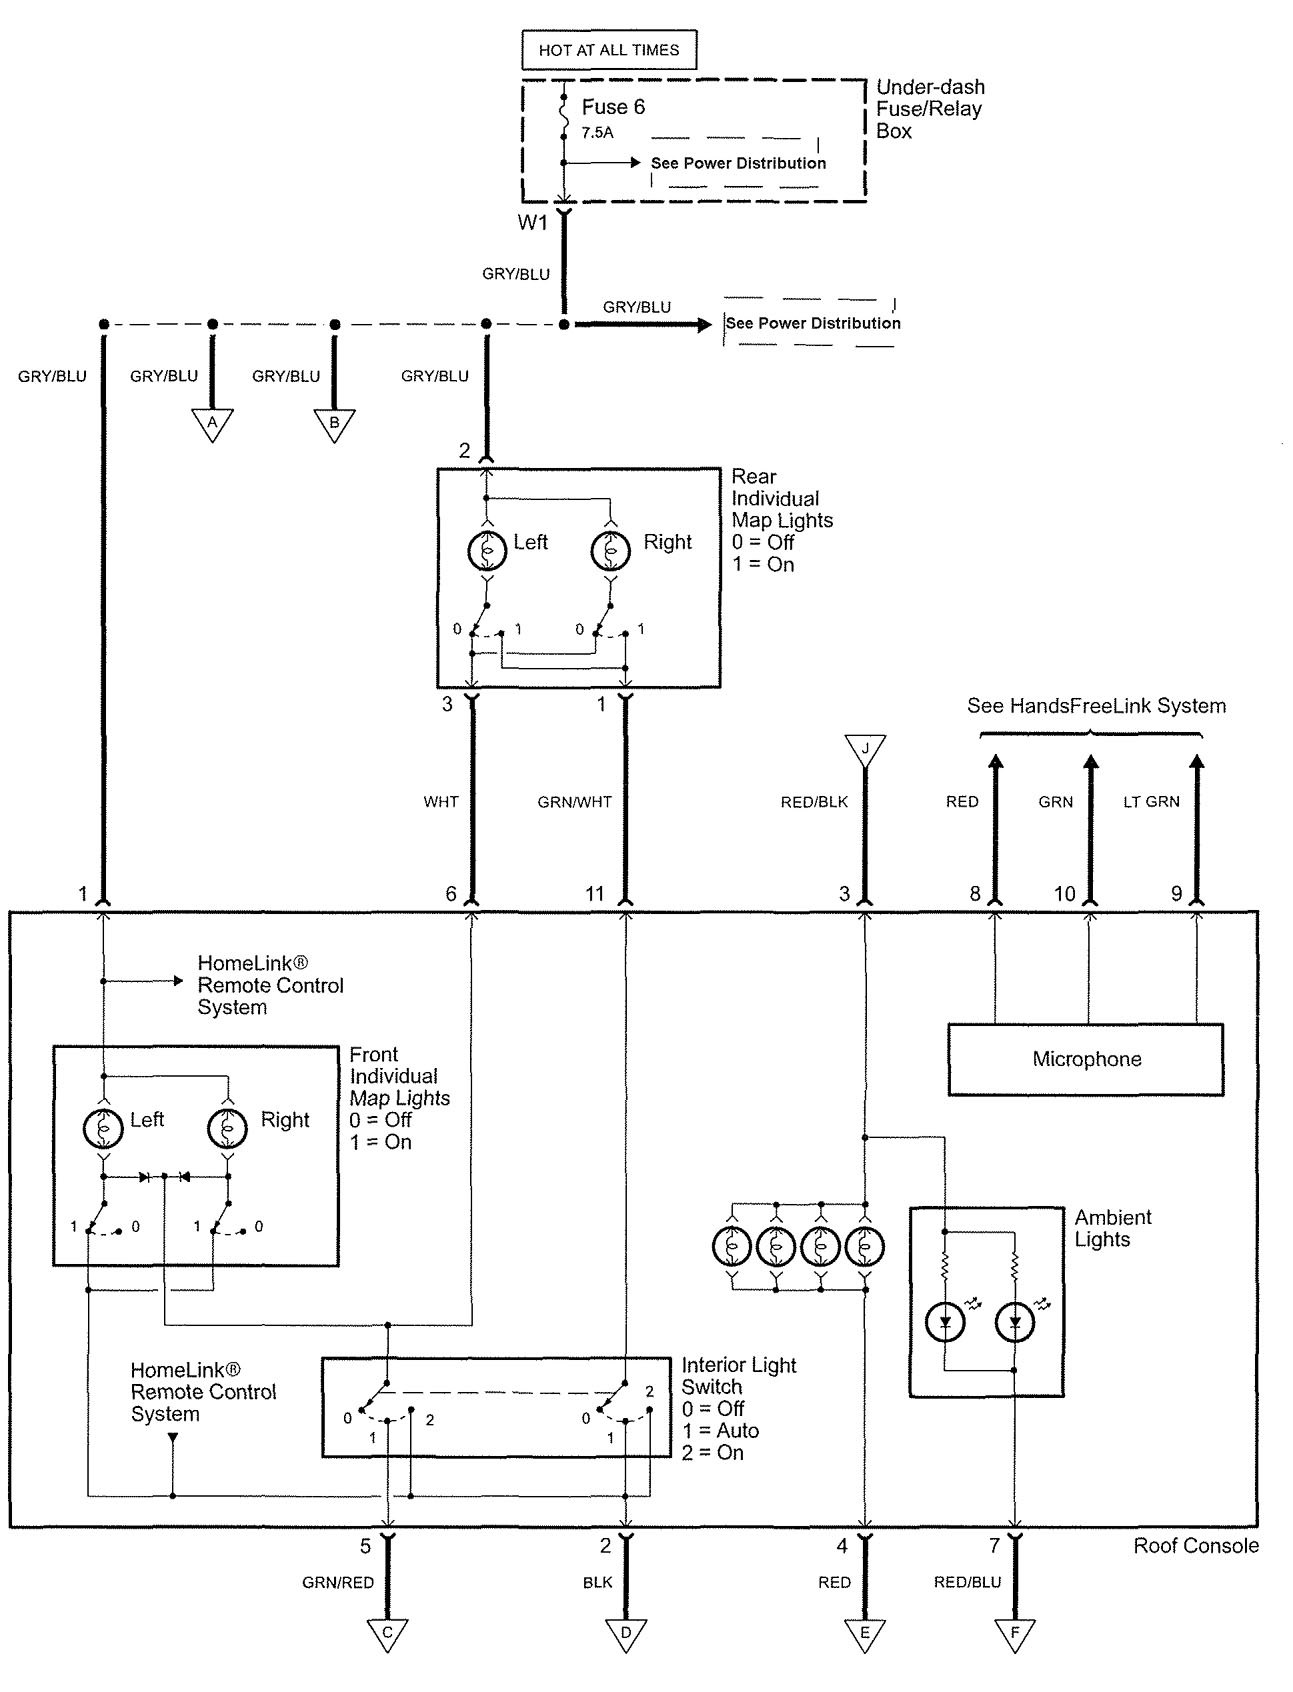 2007 Acura Tl Electrical Diagram Manual Of Wiring Fuse Box In Addition 2005 Detailed Schematic Diagrams Rh 4rmotorsports Com Radio